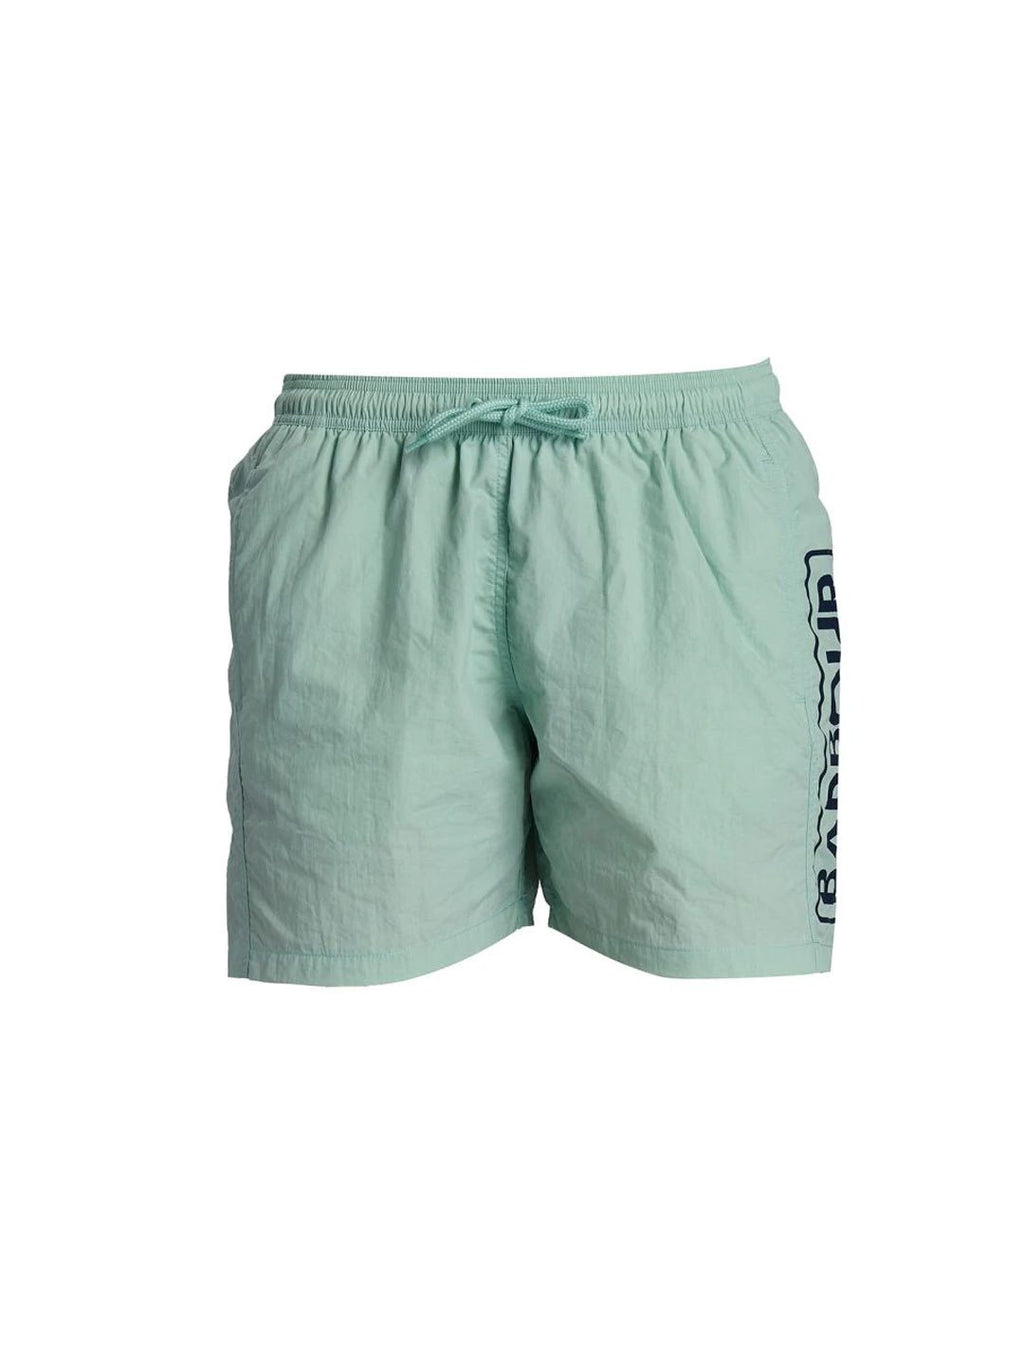 Men's BARBOUR INTERNATIONAL  LARGE LOGO SWIM SHORTS MSW006GN44